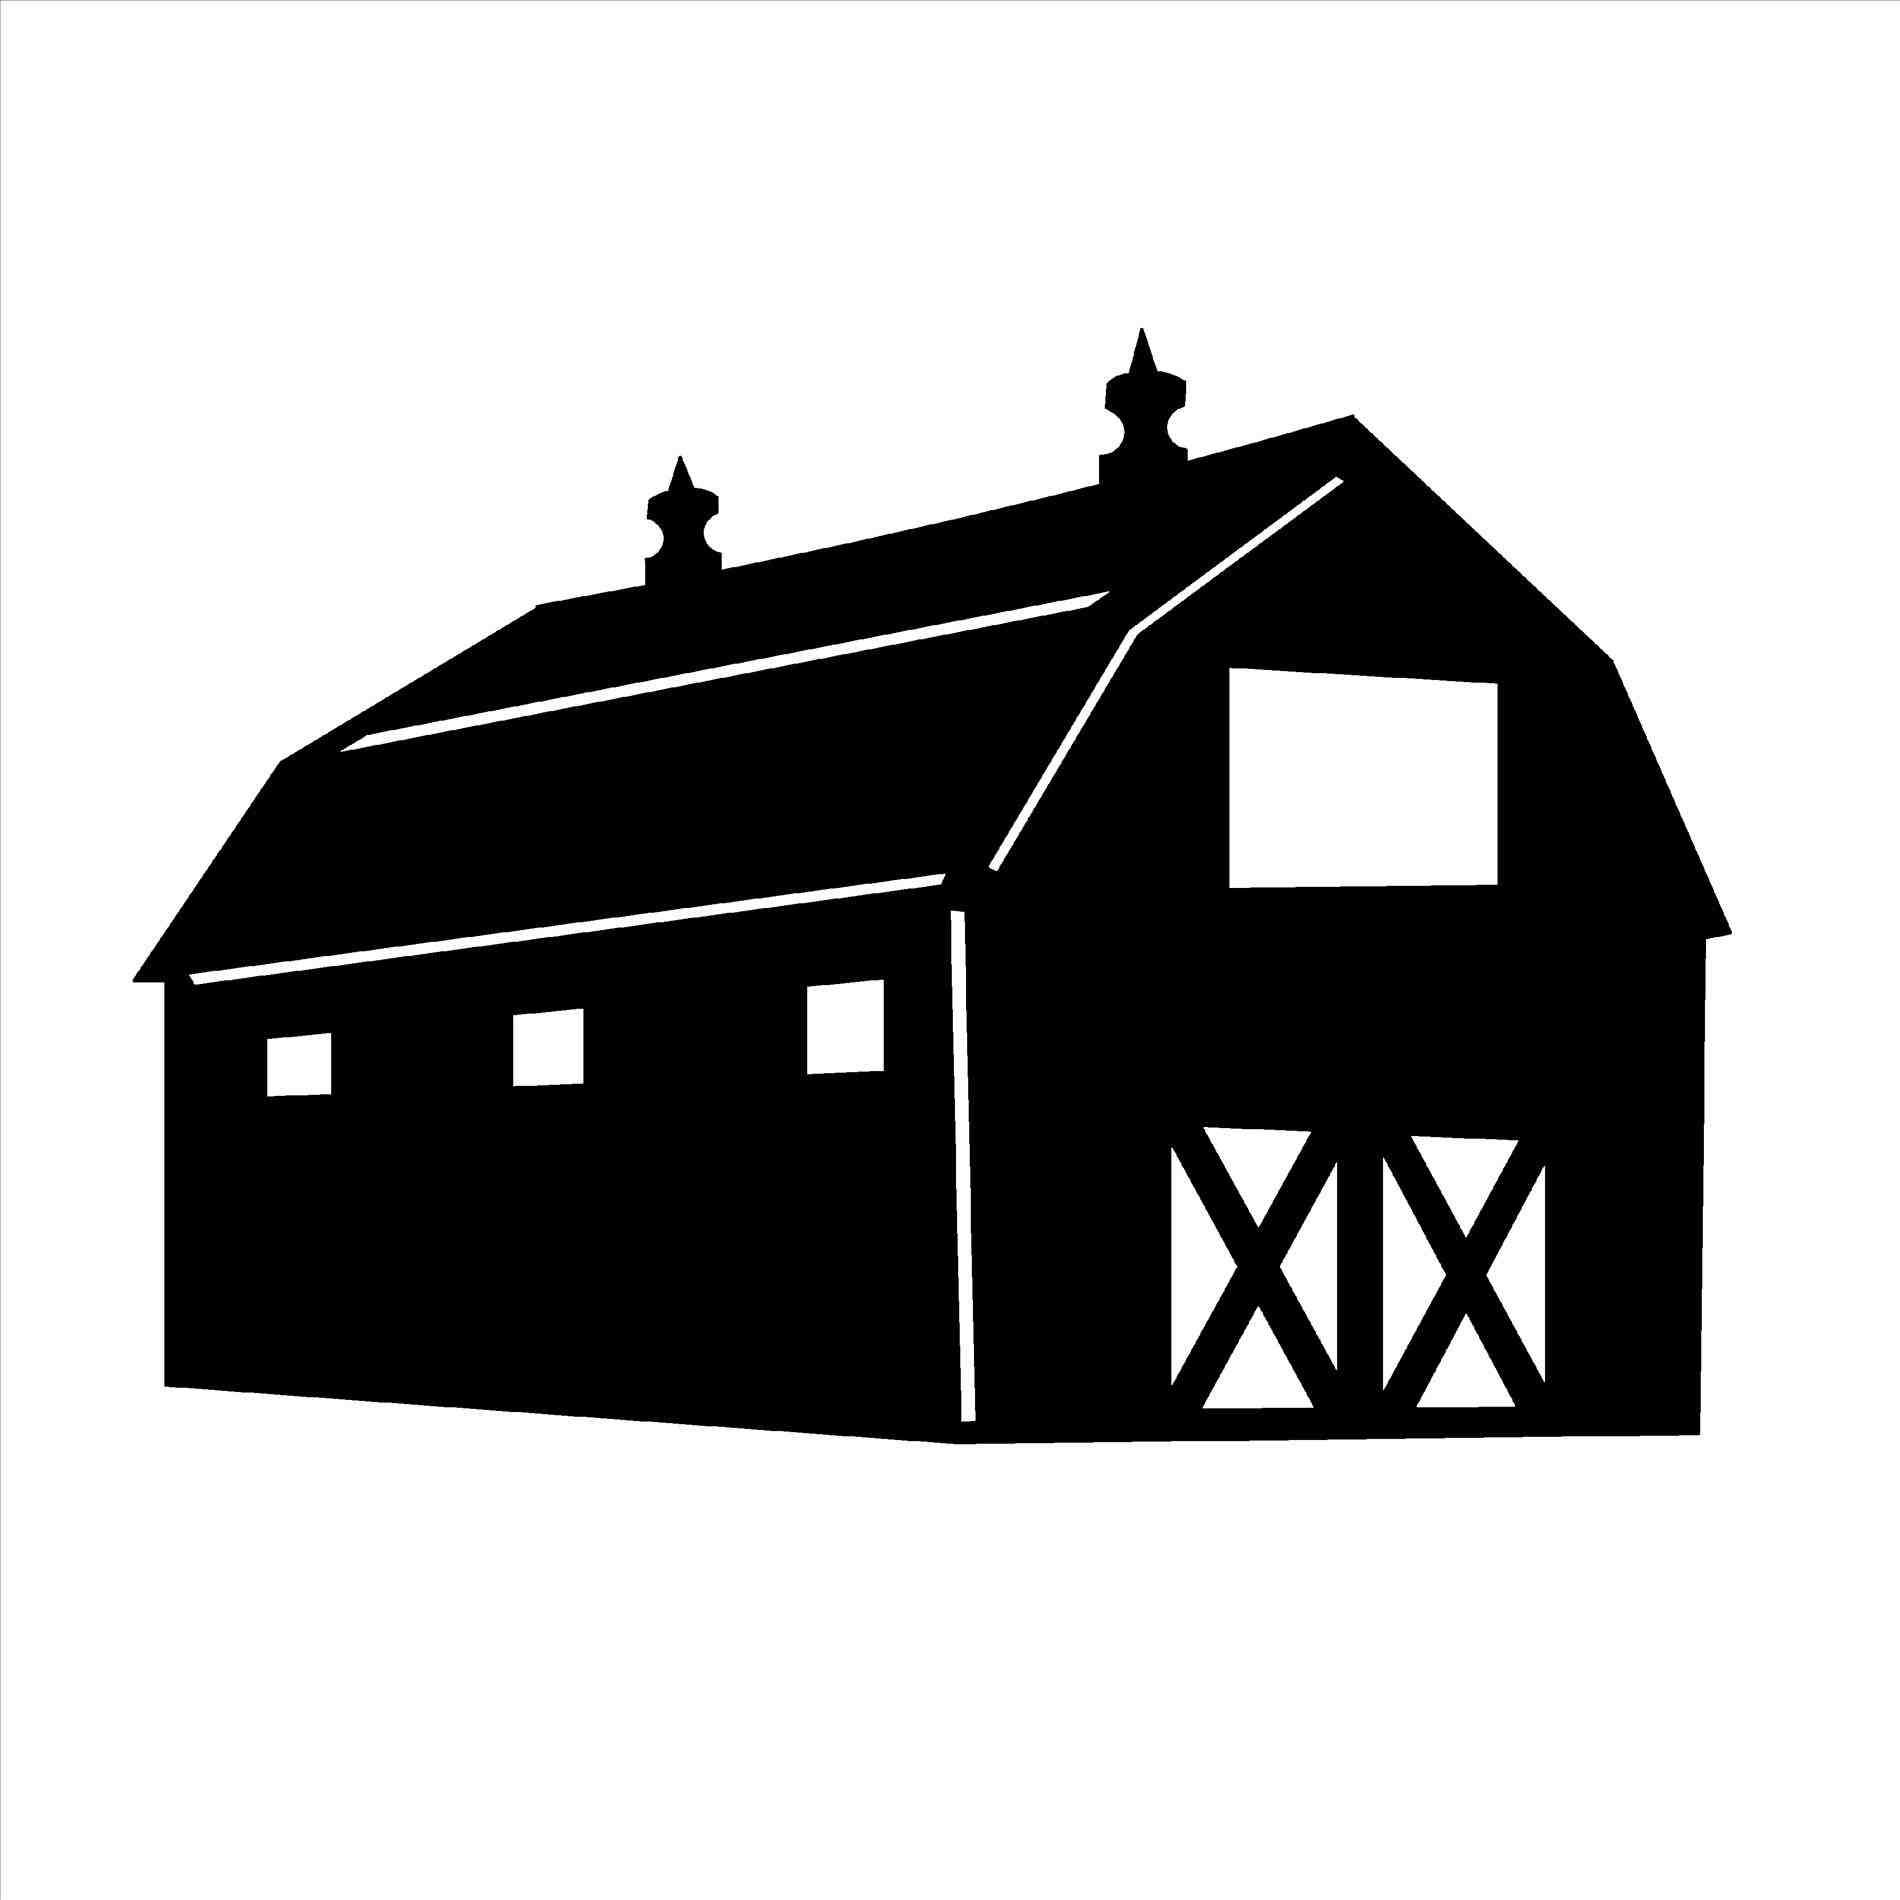 Barn clipart simple. Black and white publizzity